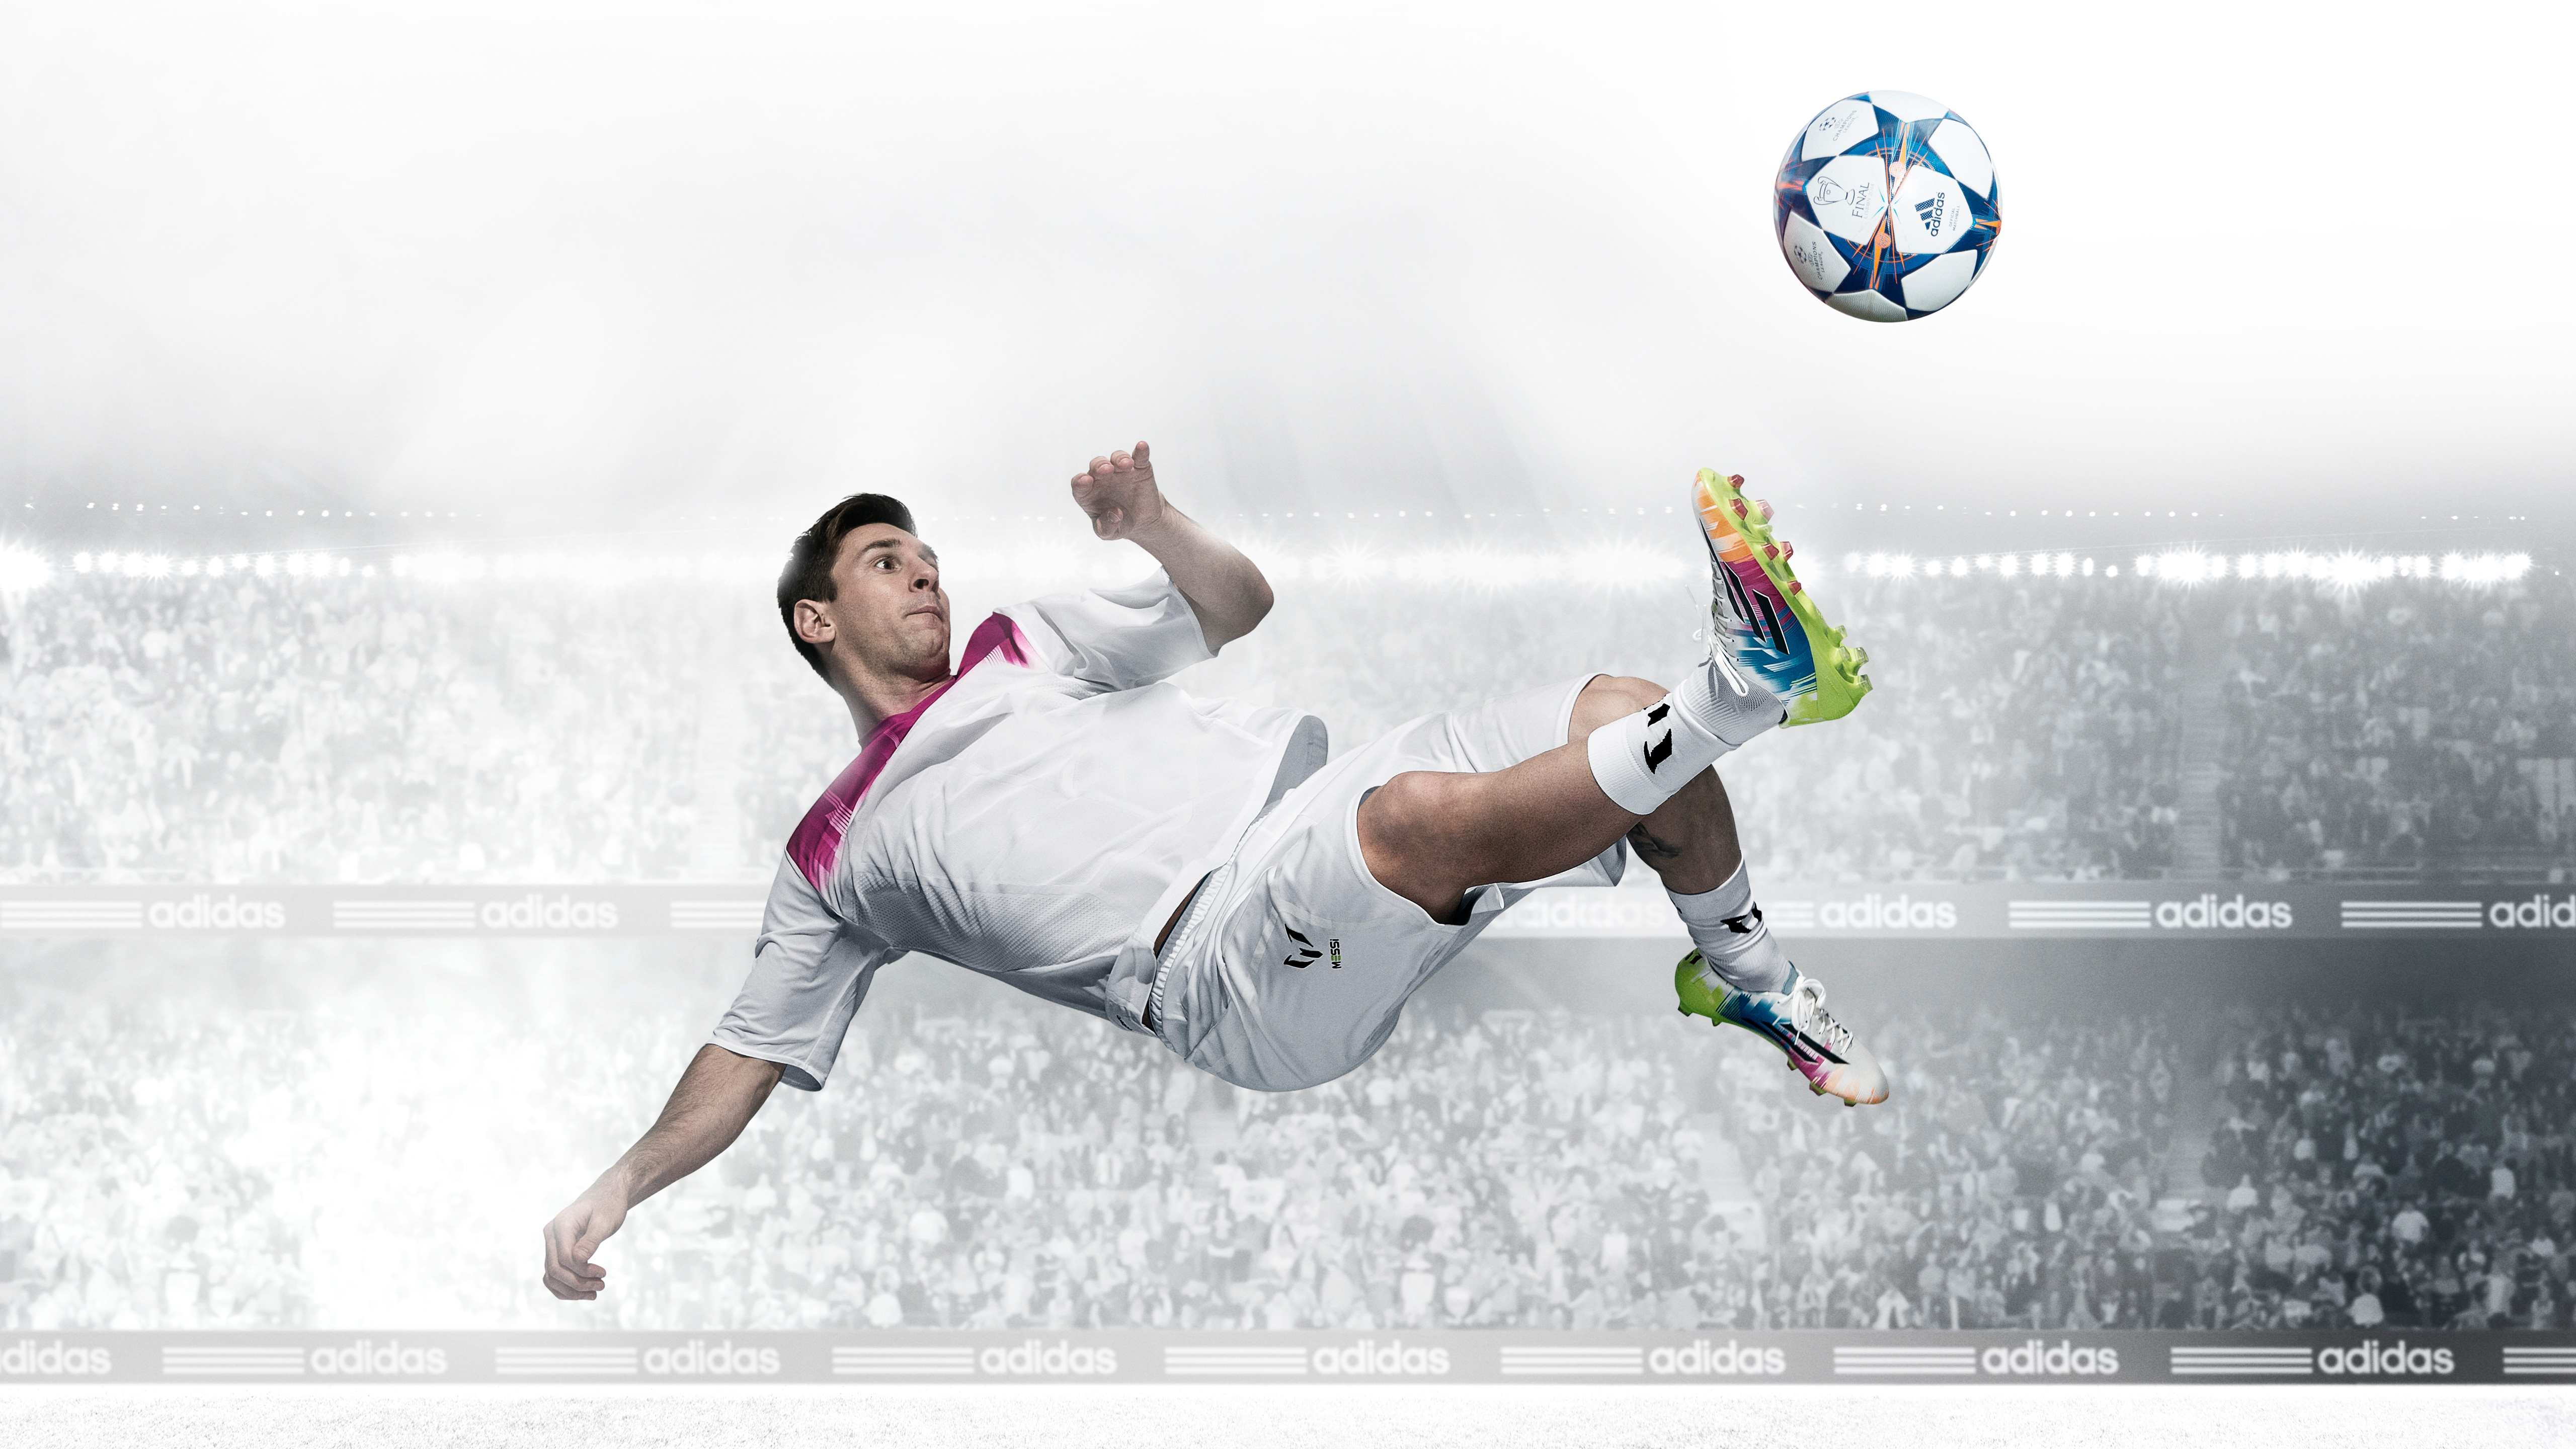 Football soccer wallpapers for free download about wallpapers.